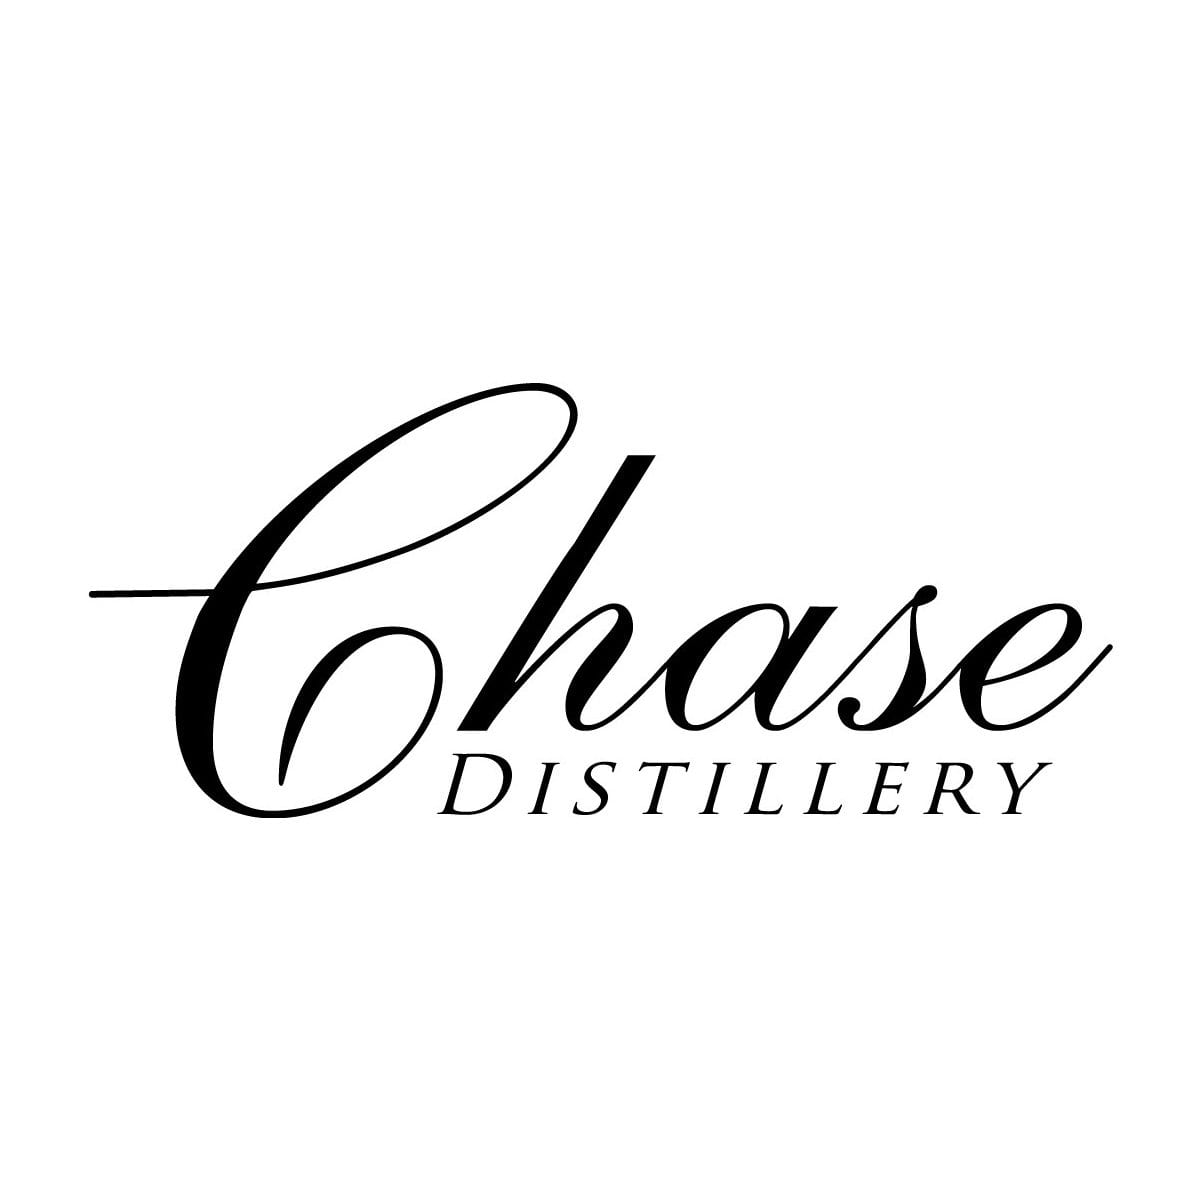 Chase Distillery Ltd, Chase Farm, Rosemaund, Hereford, HR1 3PG